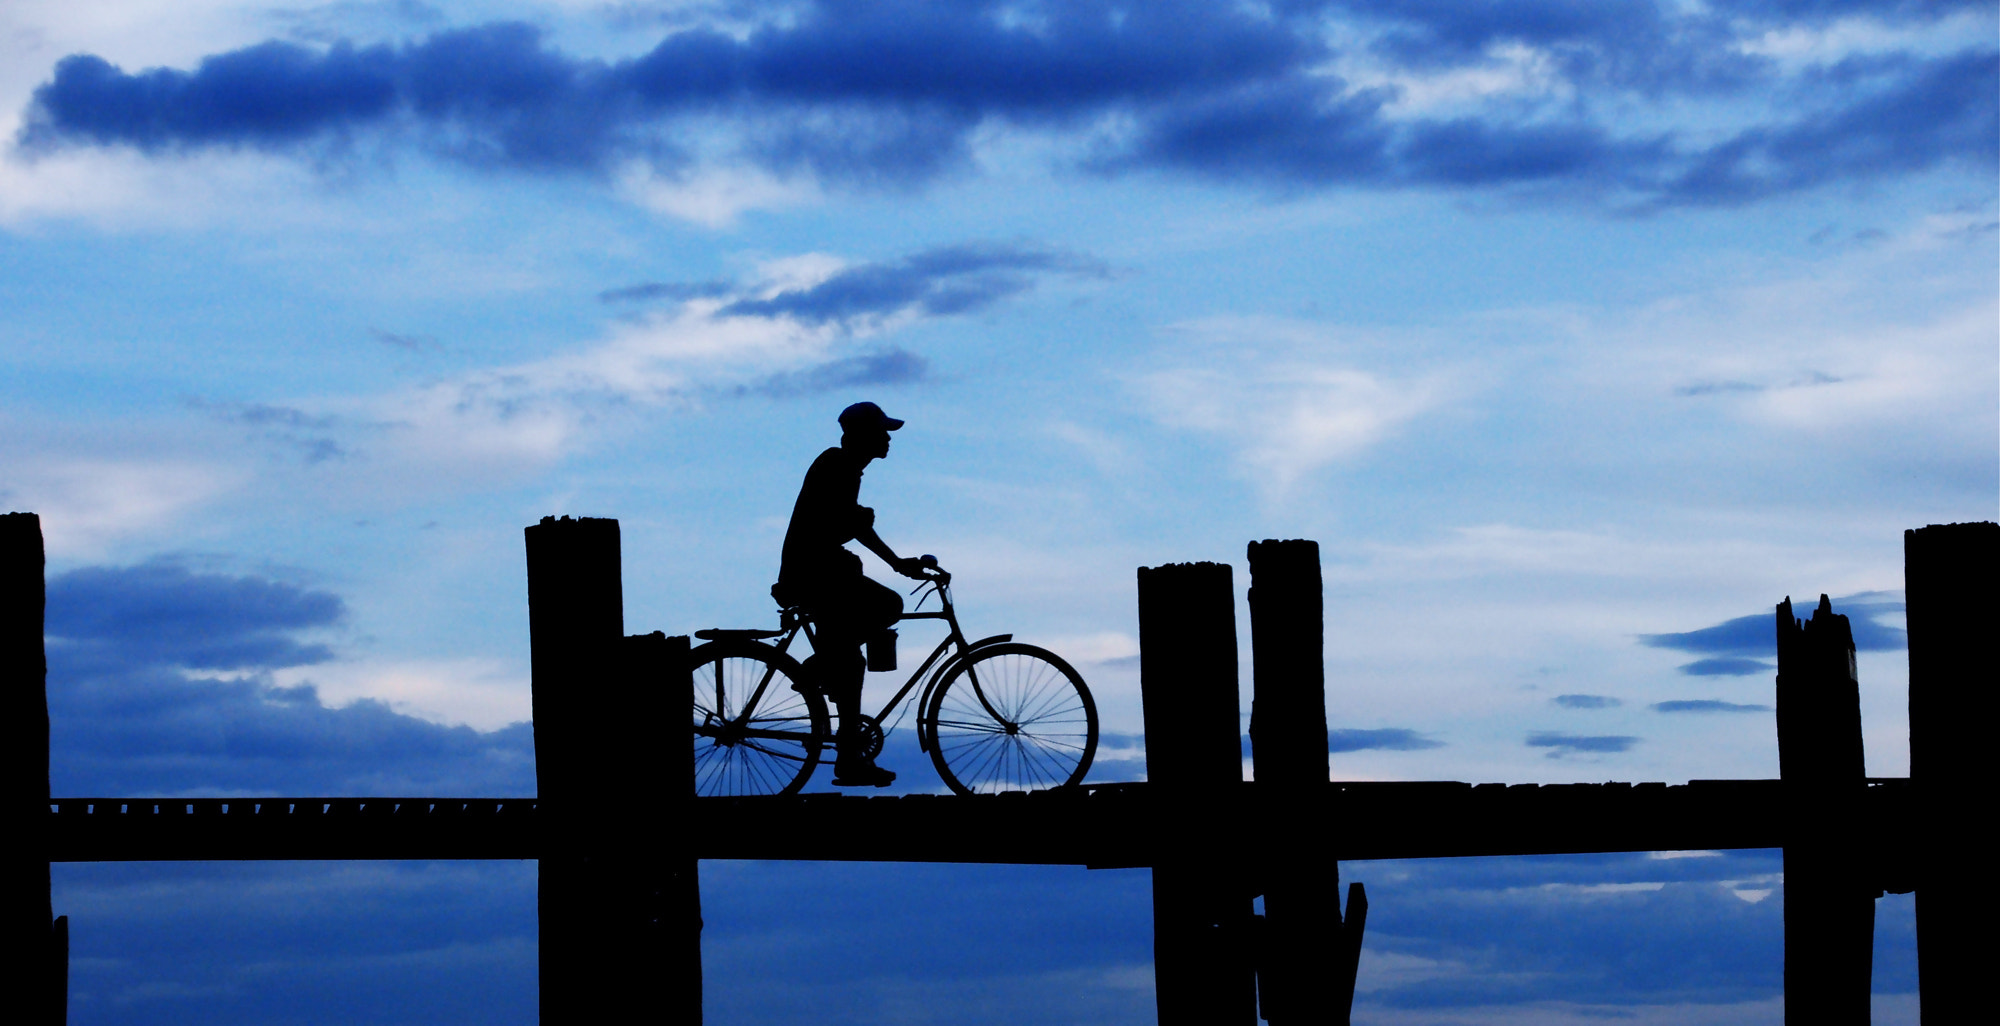 Photograph riding blue by Emanuele Molinari on 500px